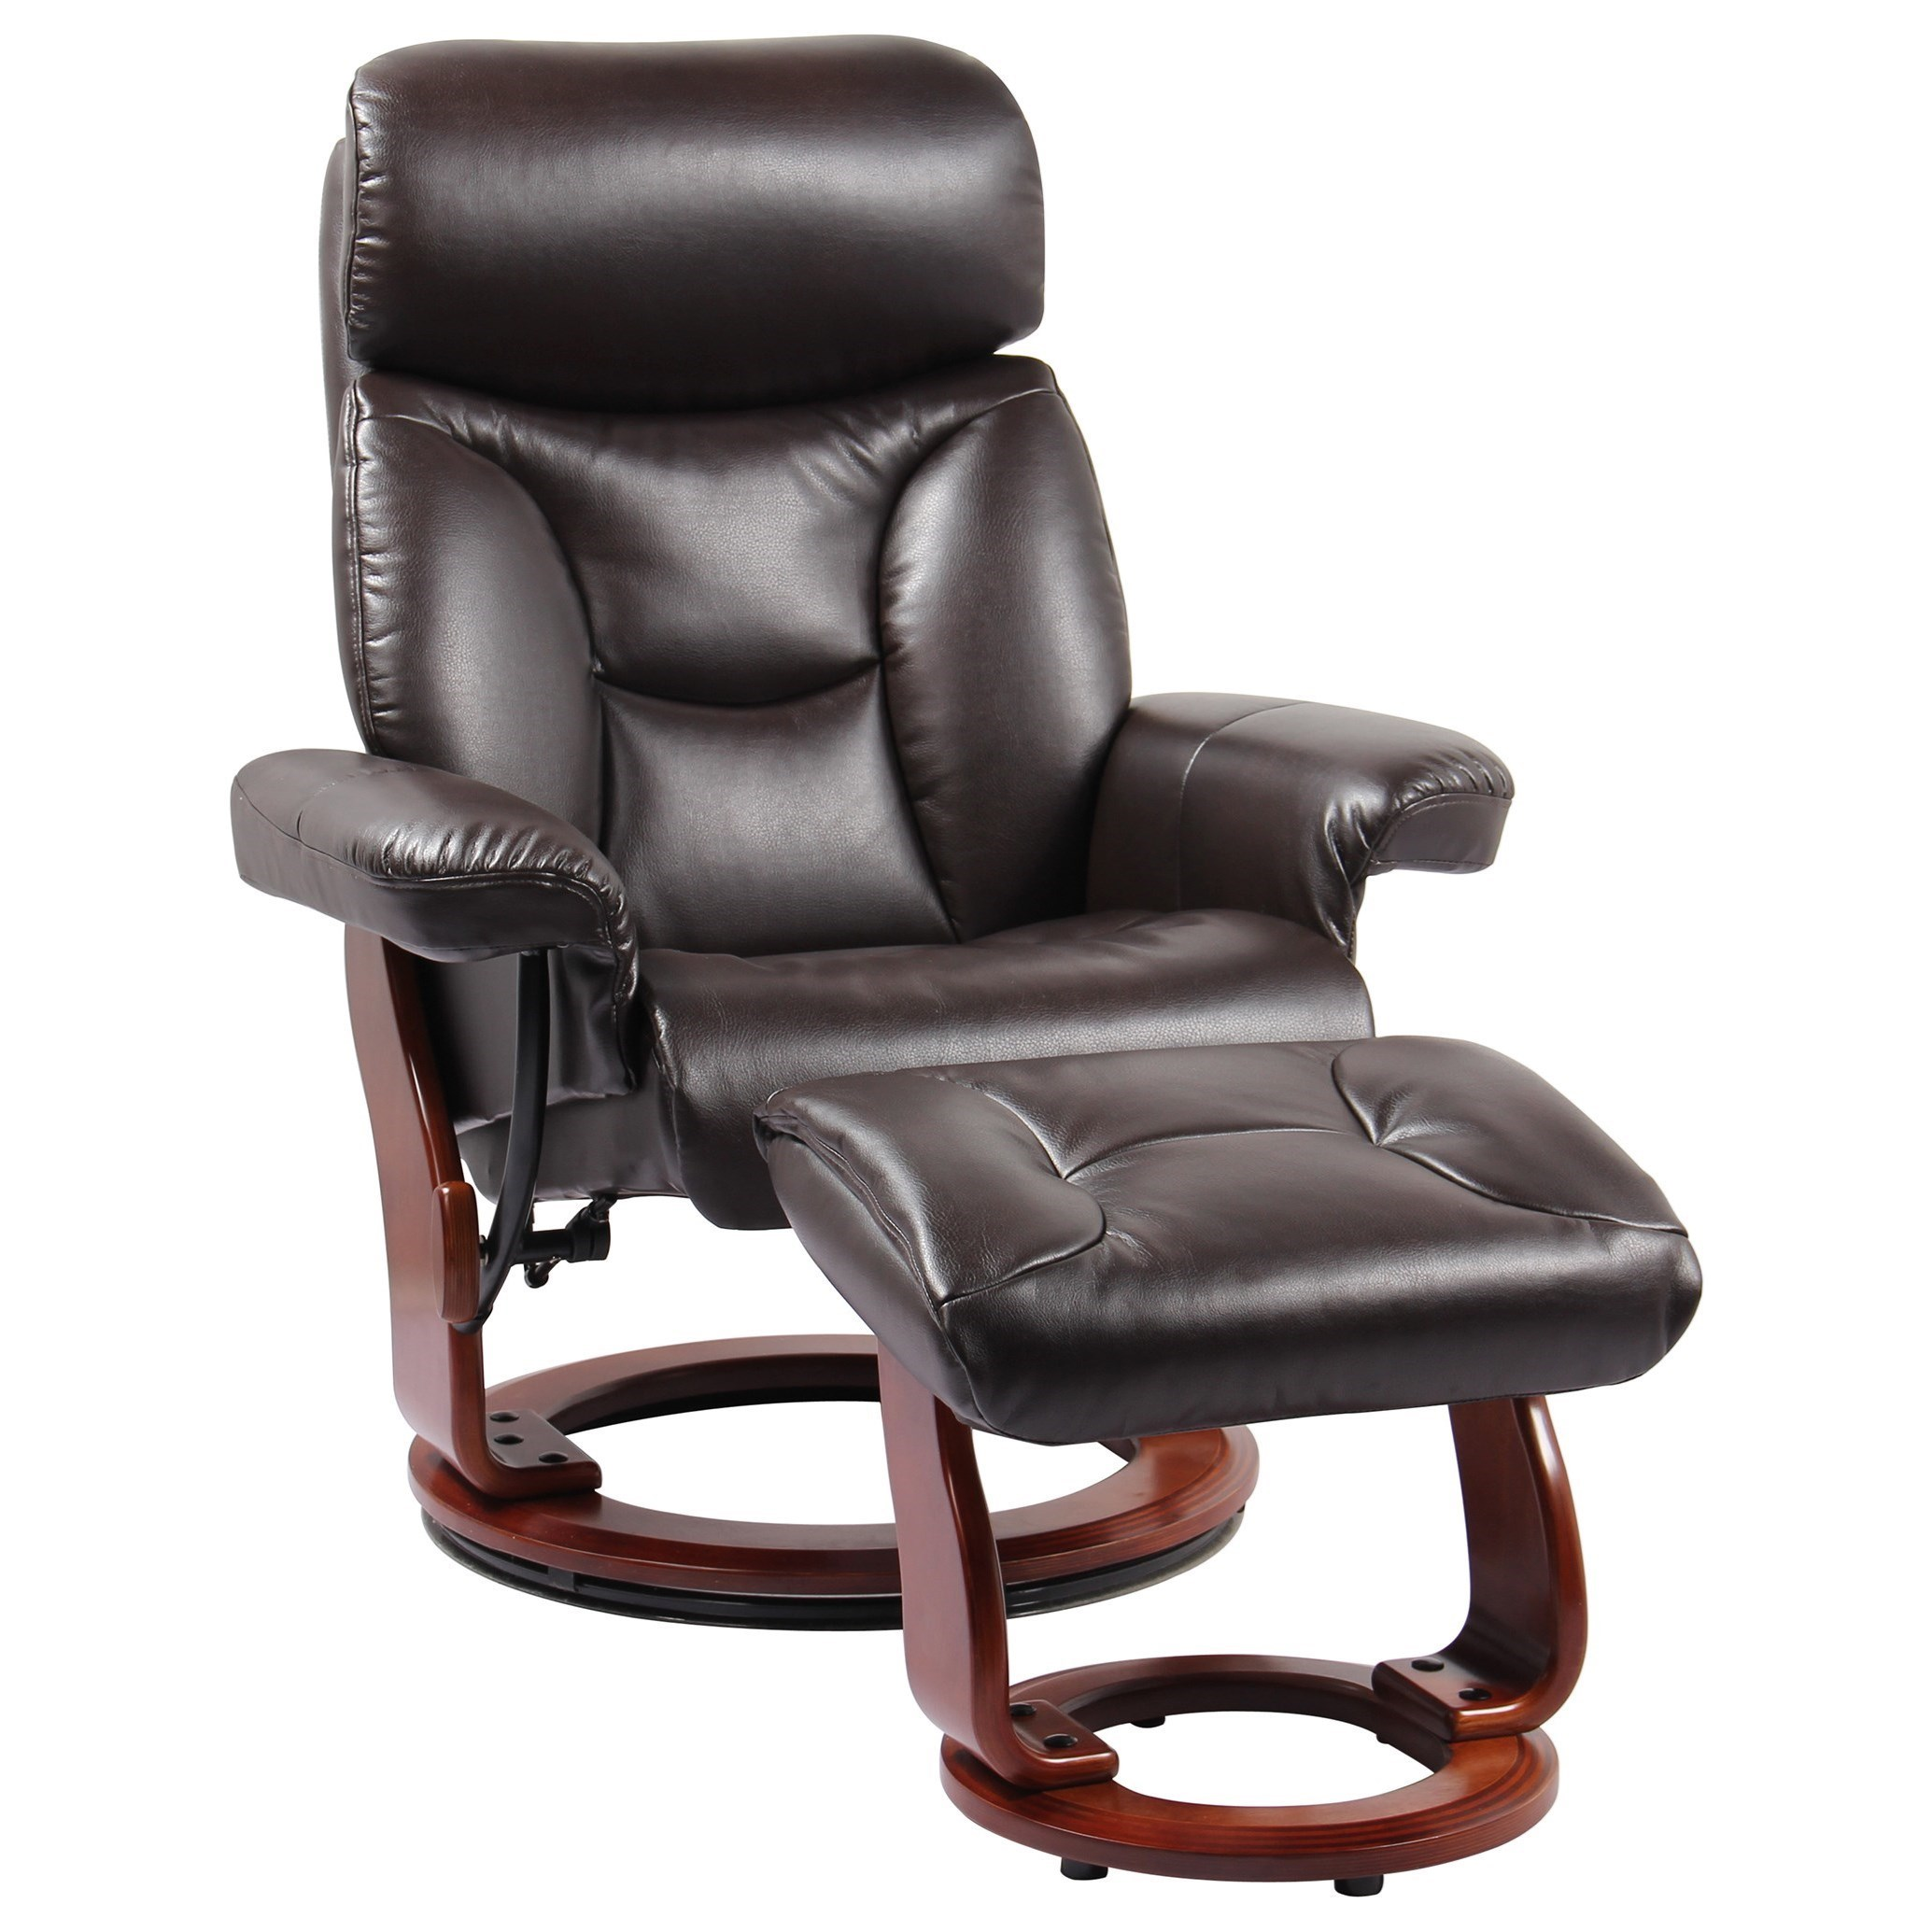 Benchmaster Emmie IIReclining Chair And Ottoman